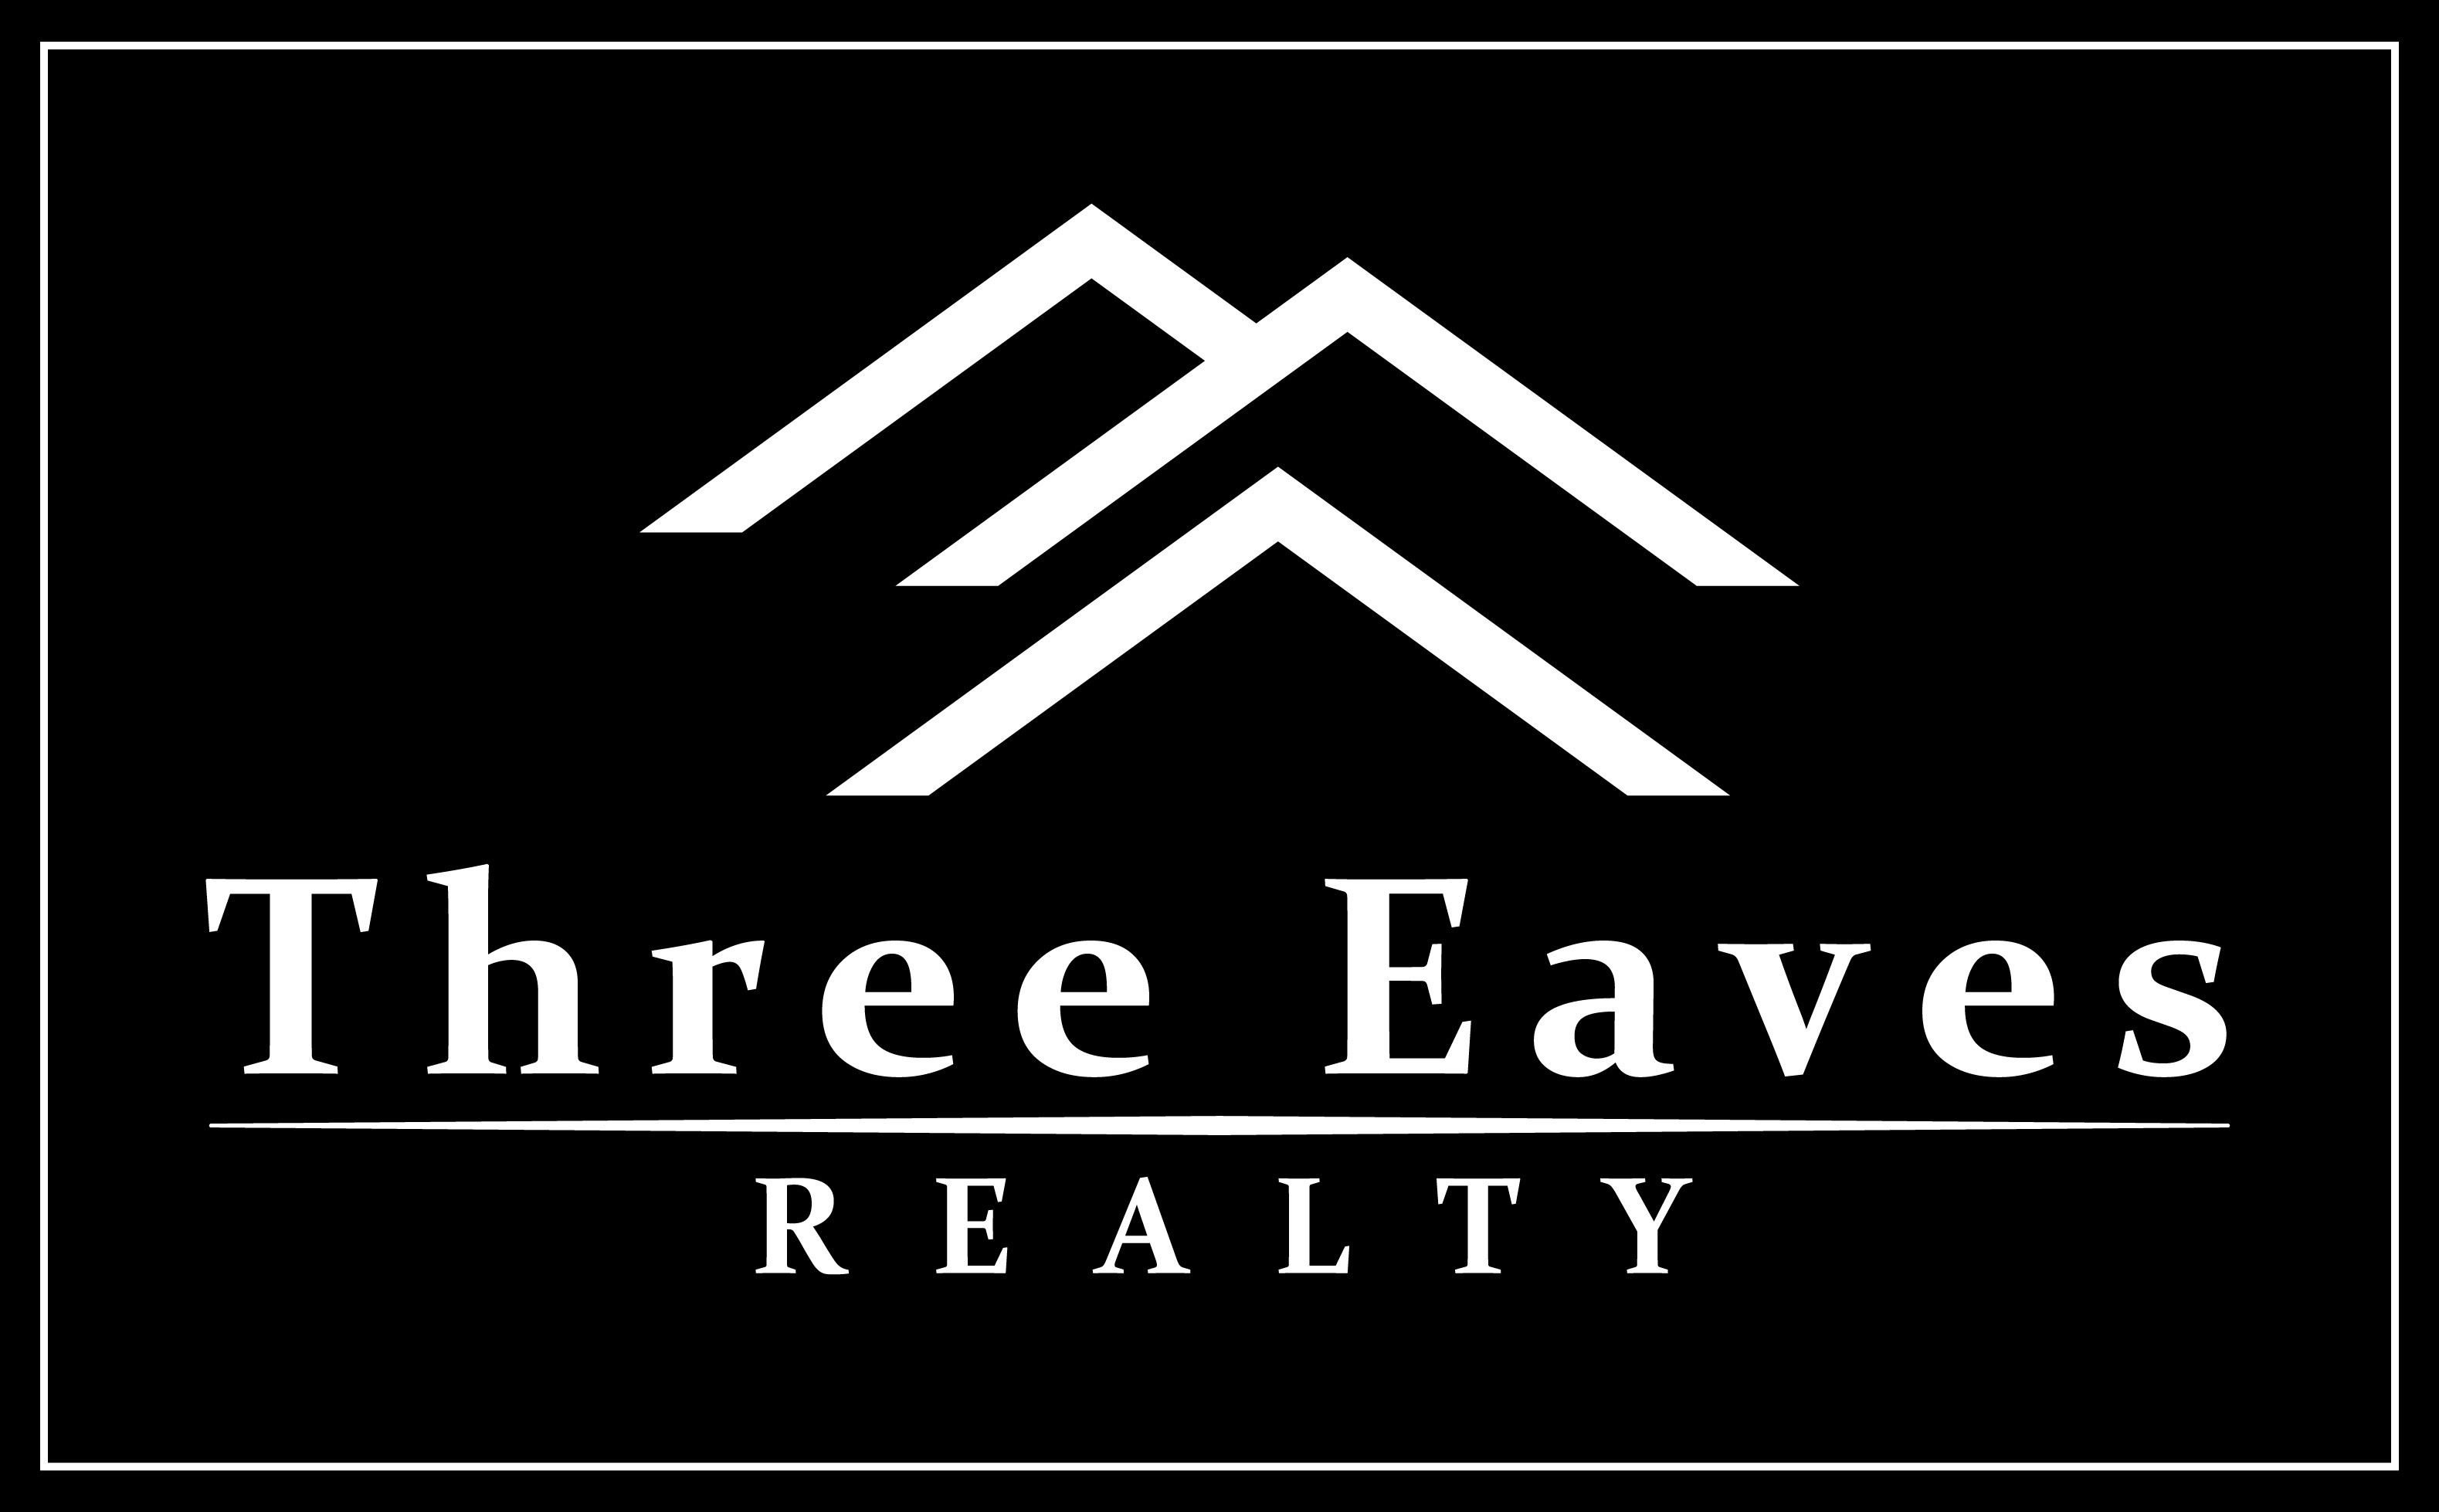 Three Eaves Realty